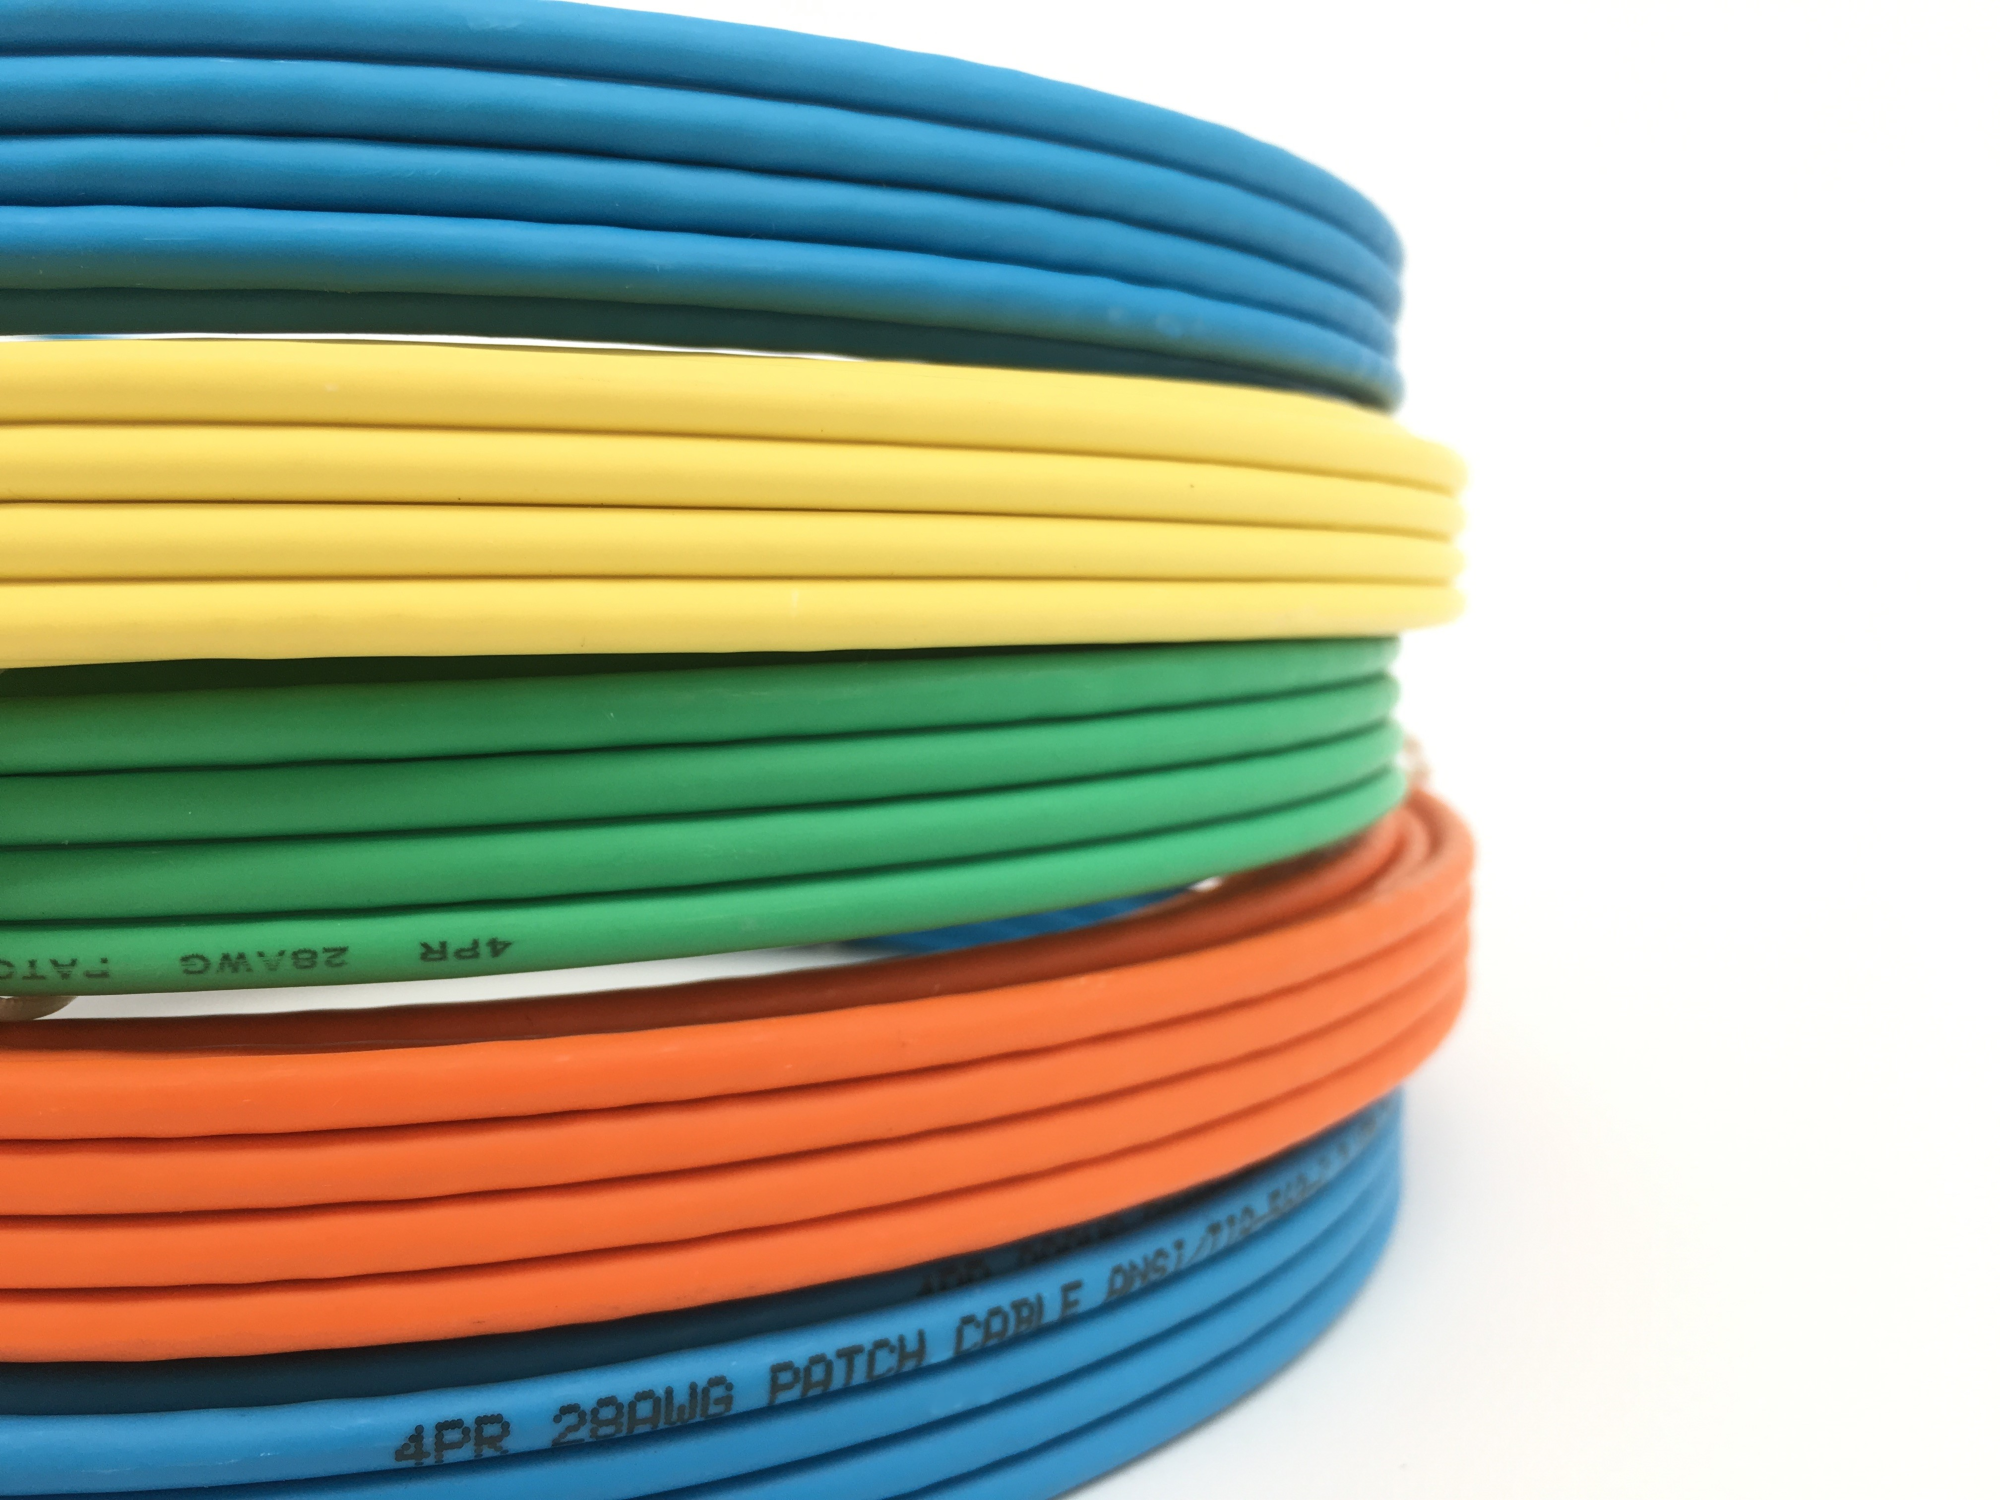 Ribbon Patch Cable